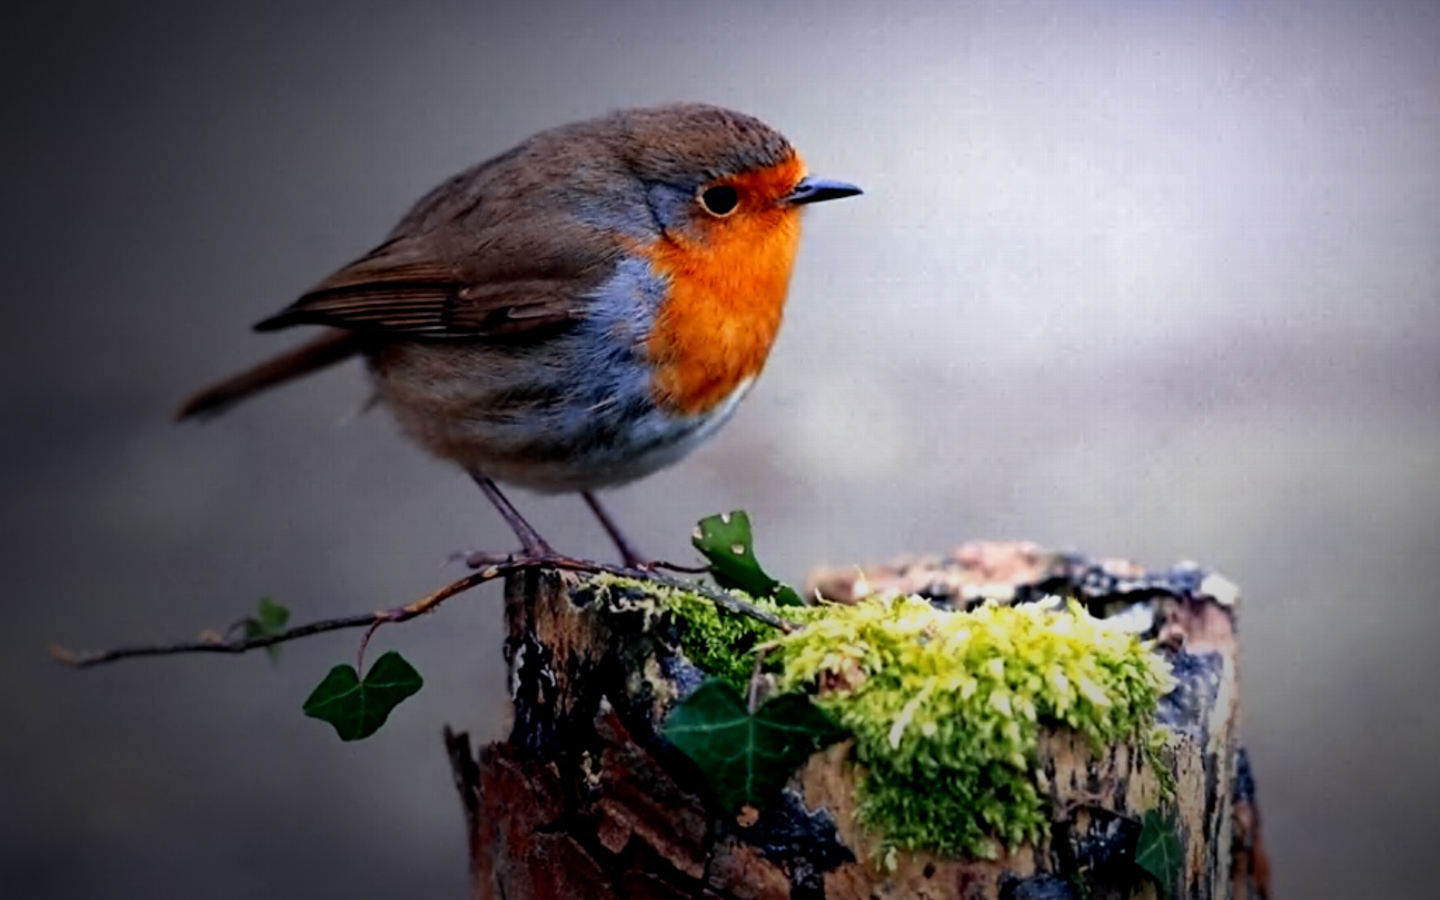 Cute Circle Bird Wallpaper Download Wallpaper WallpaperLepi 1440x900